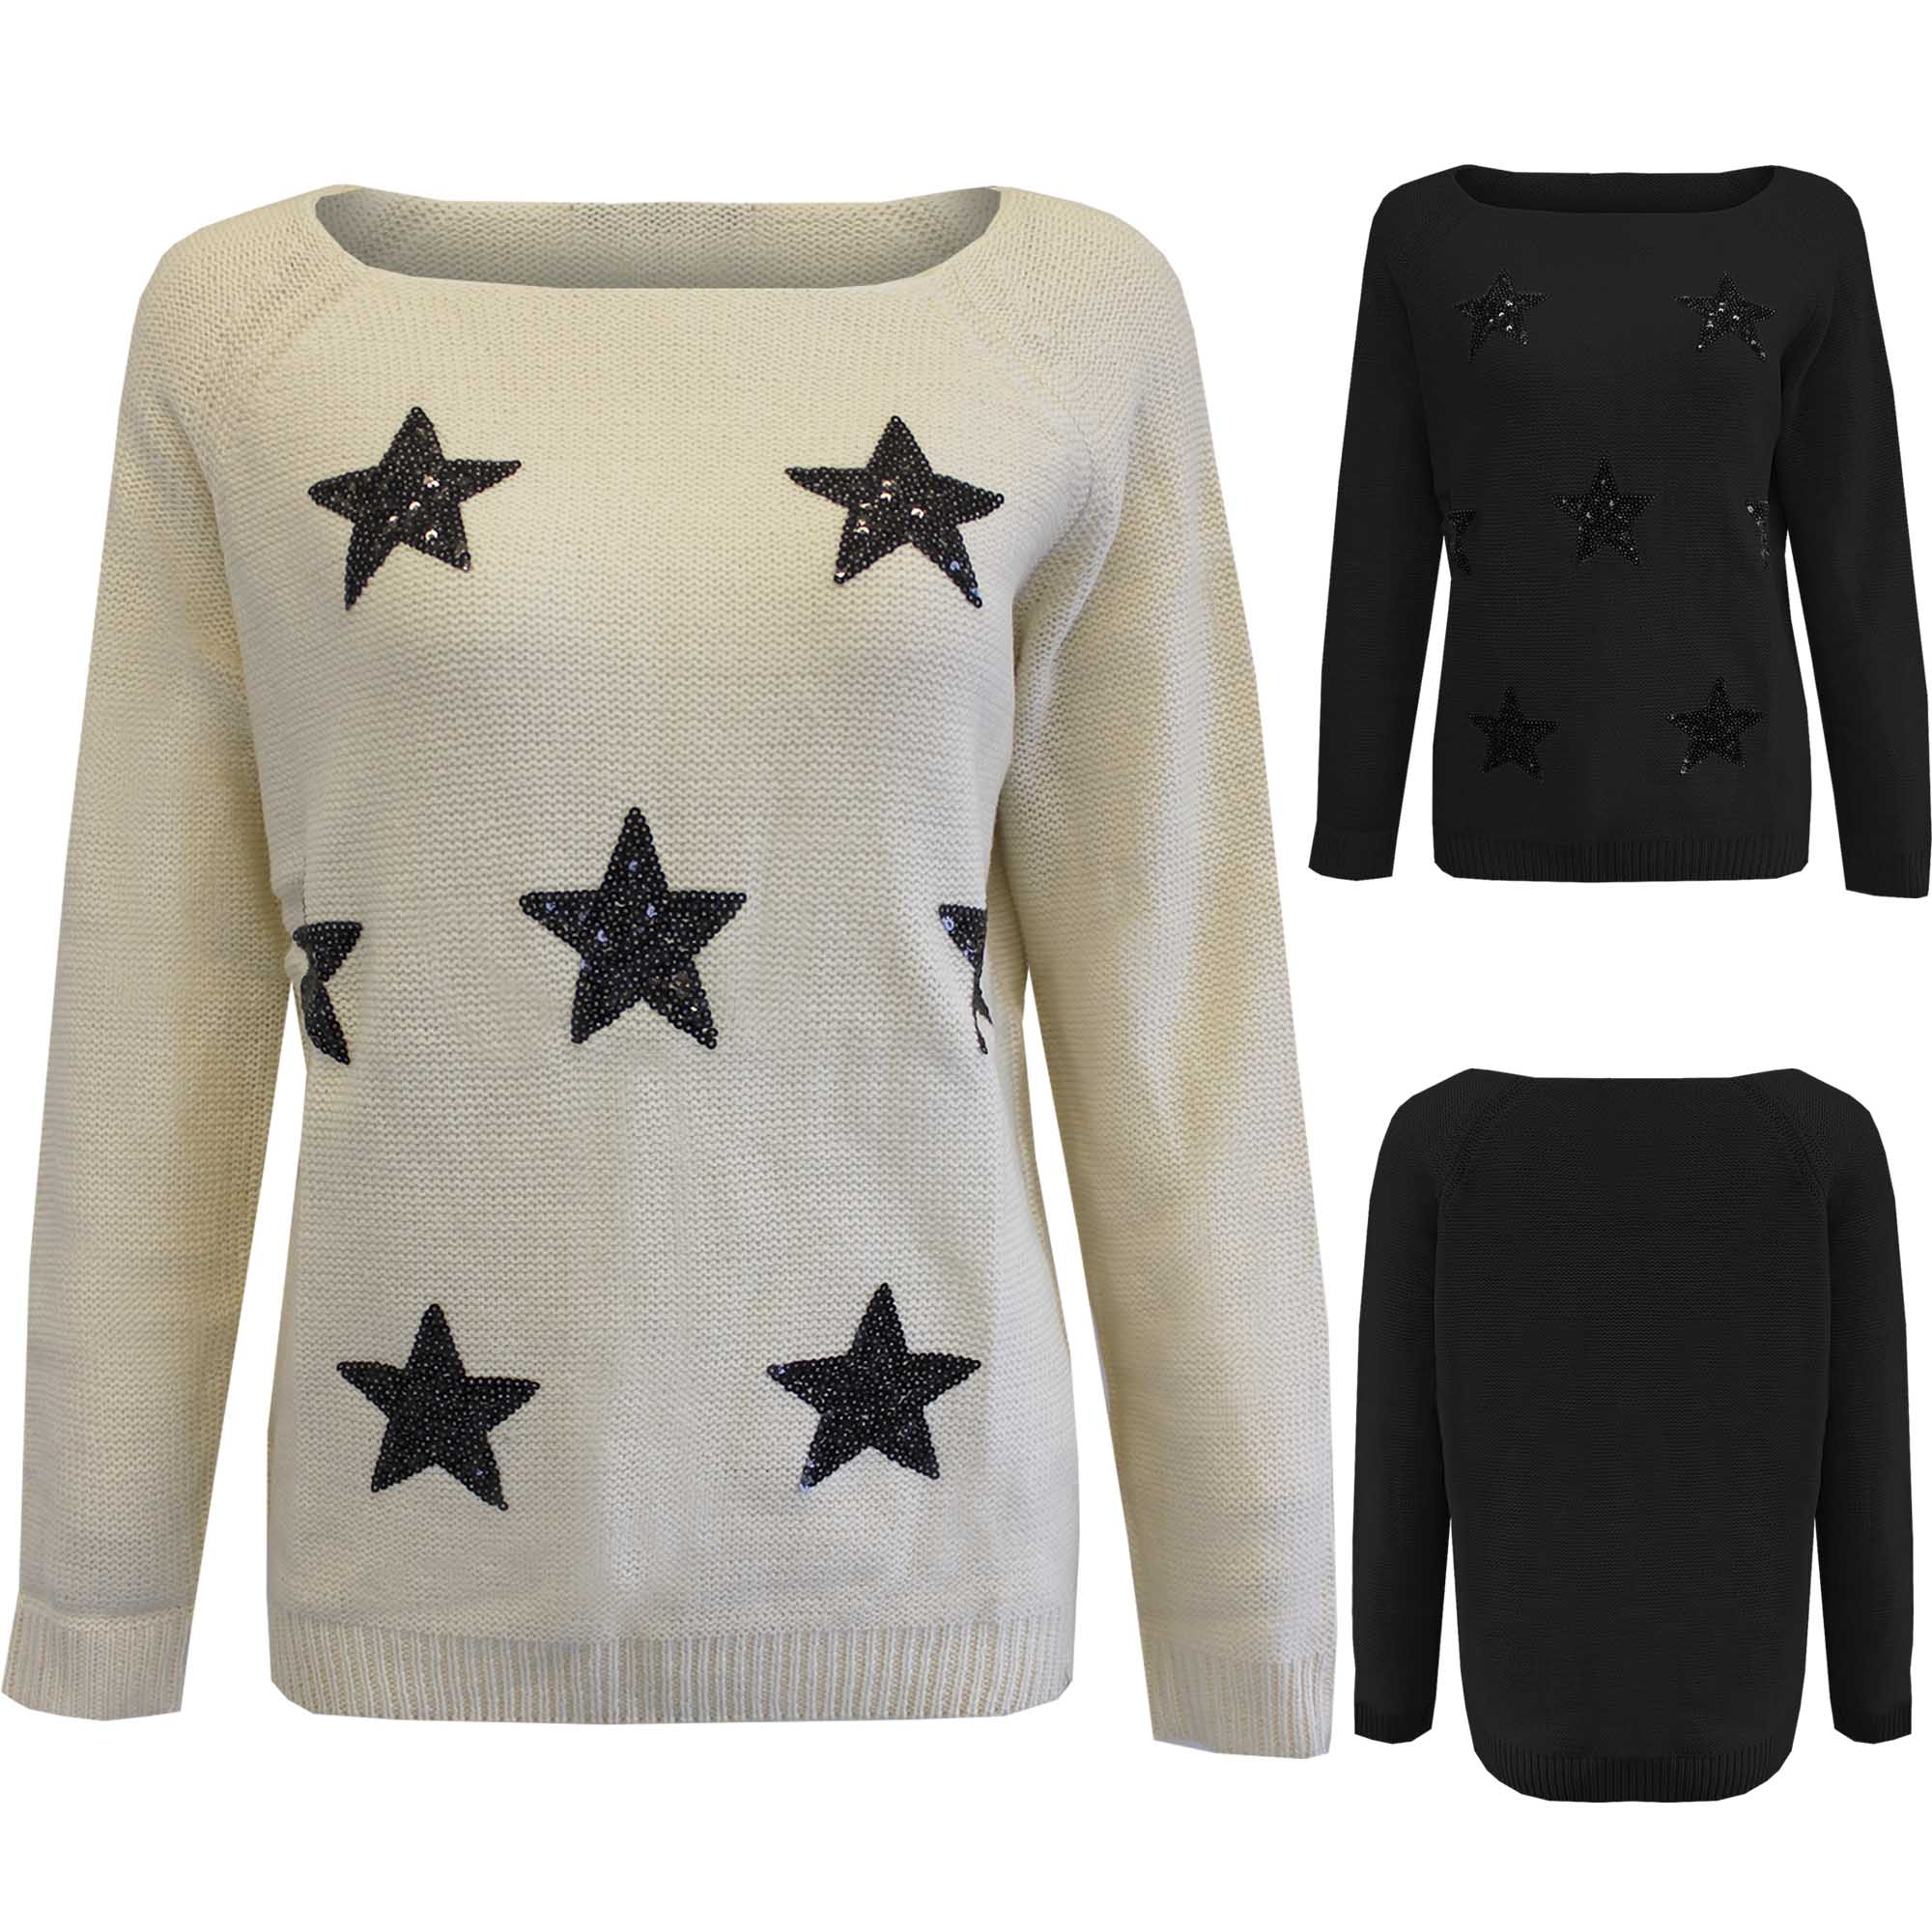 NEW LADIES SEQUIN STAR SLASH NECK JUMPER WOMENS KNITTED LONG ...